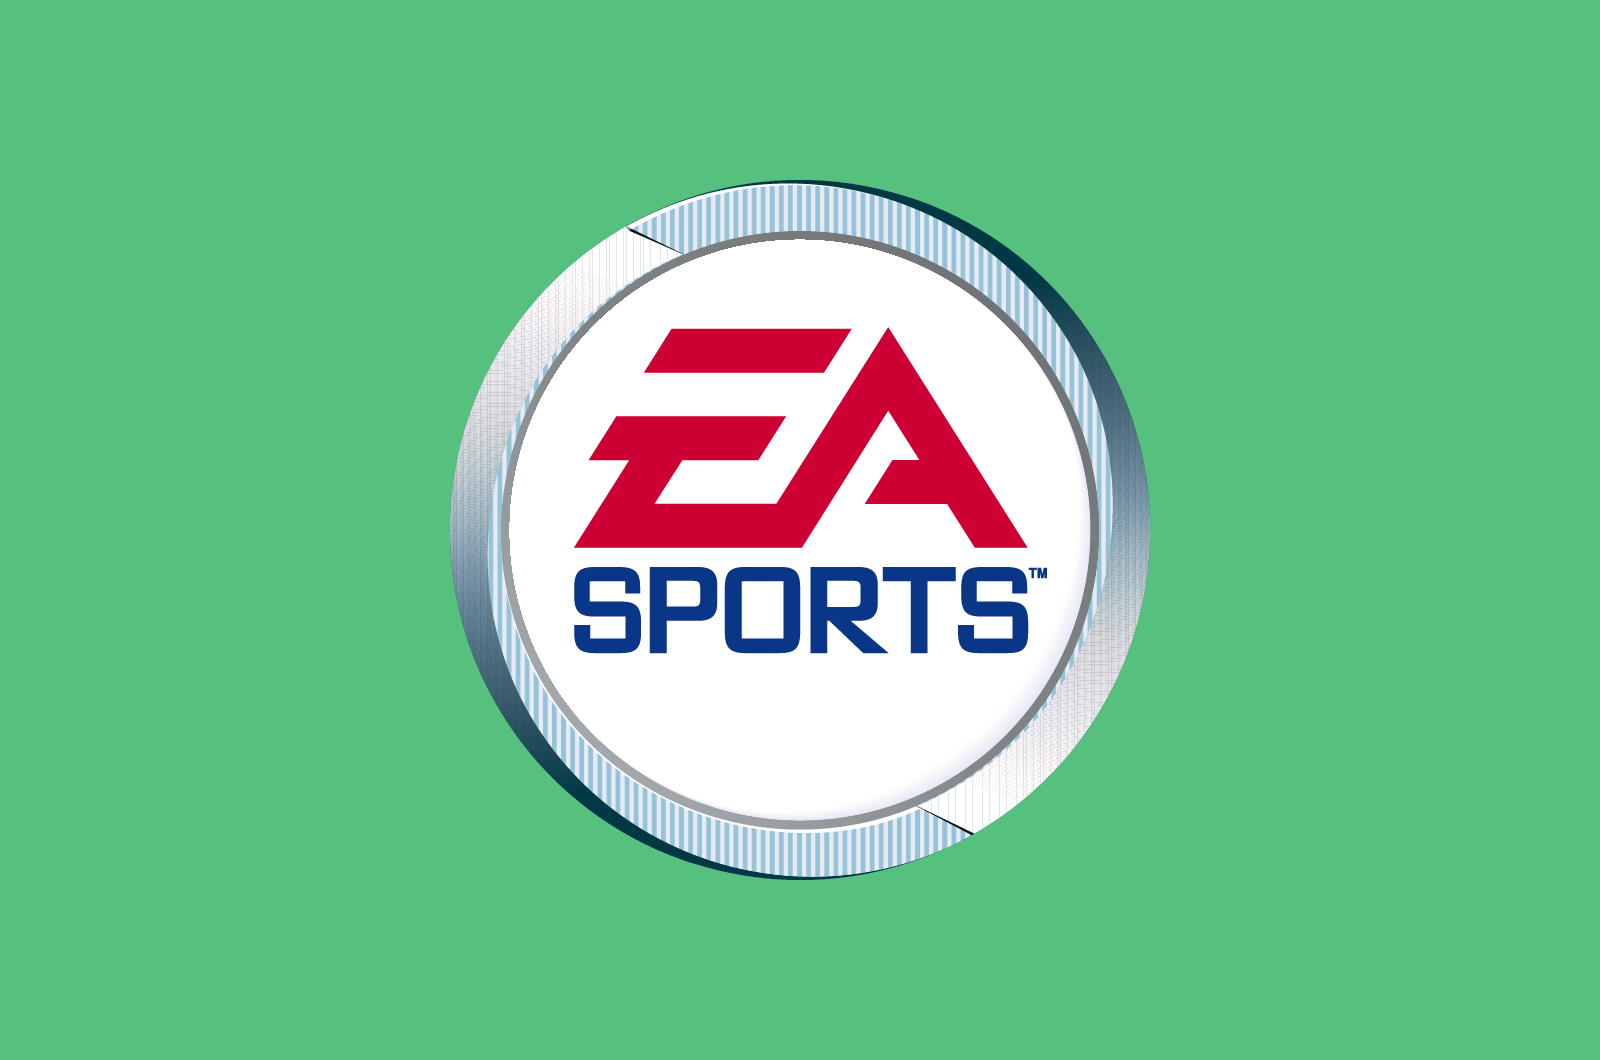 EA Sports medallion